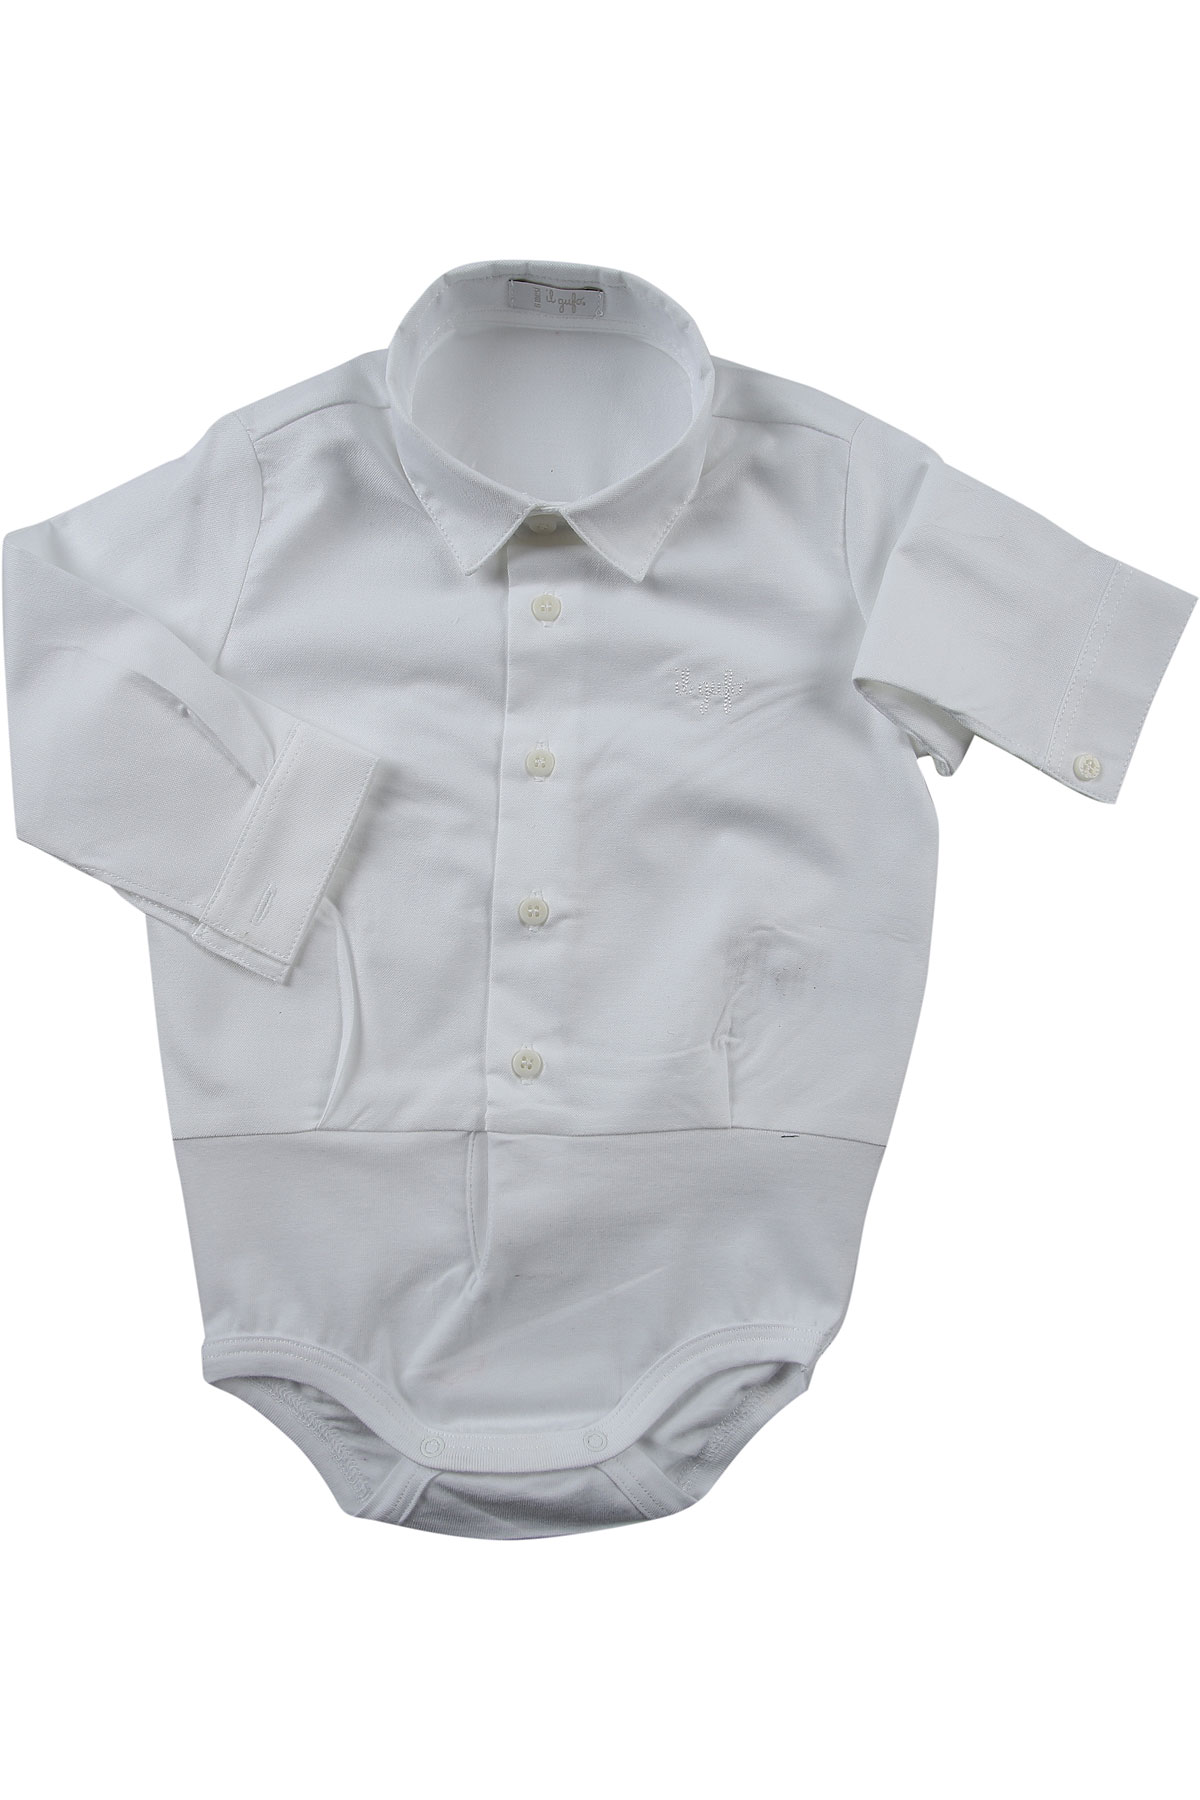 Il Gufo Baby Bodysuits & Onesies for Boys On Sale, White, Cotton, 2019, 6M 9M